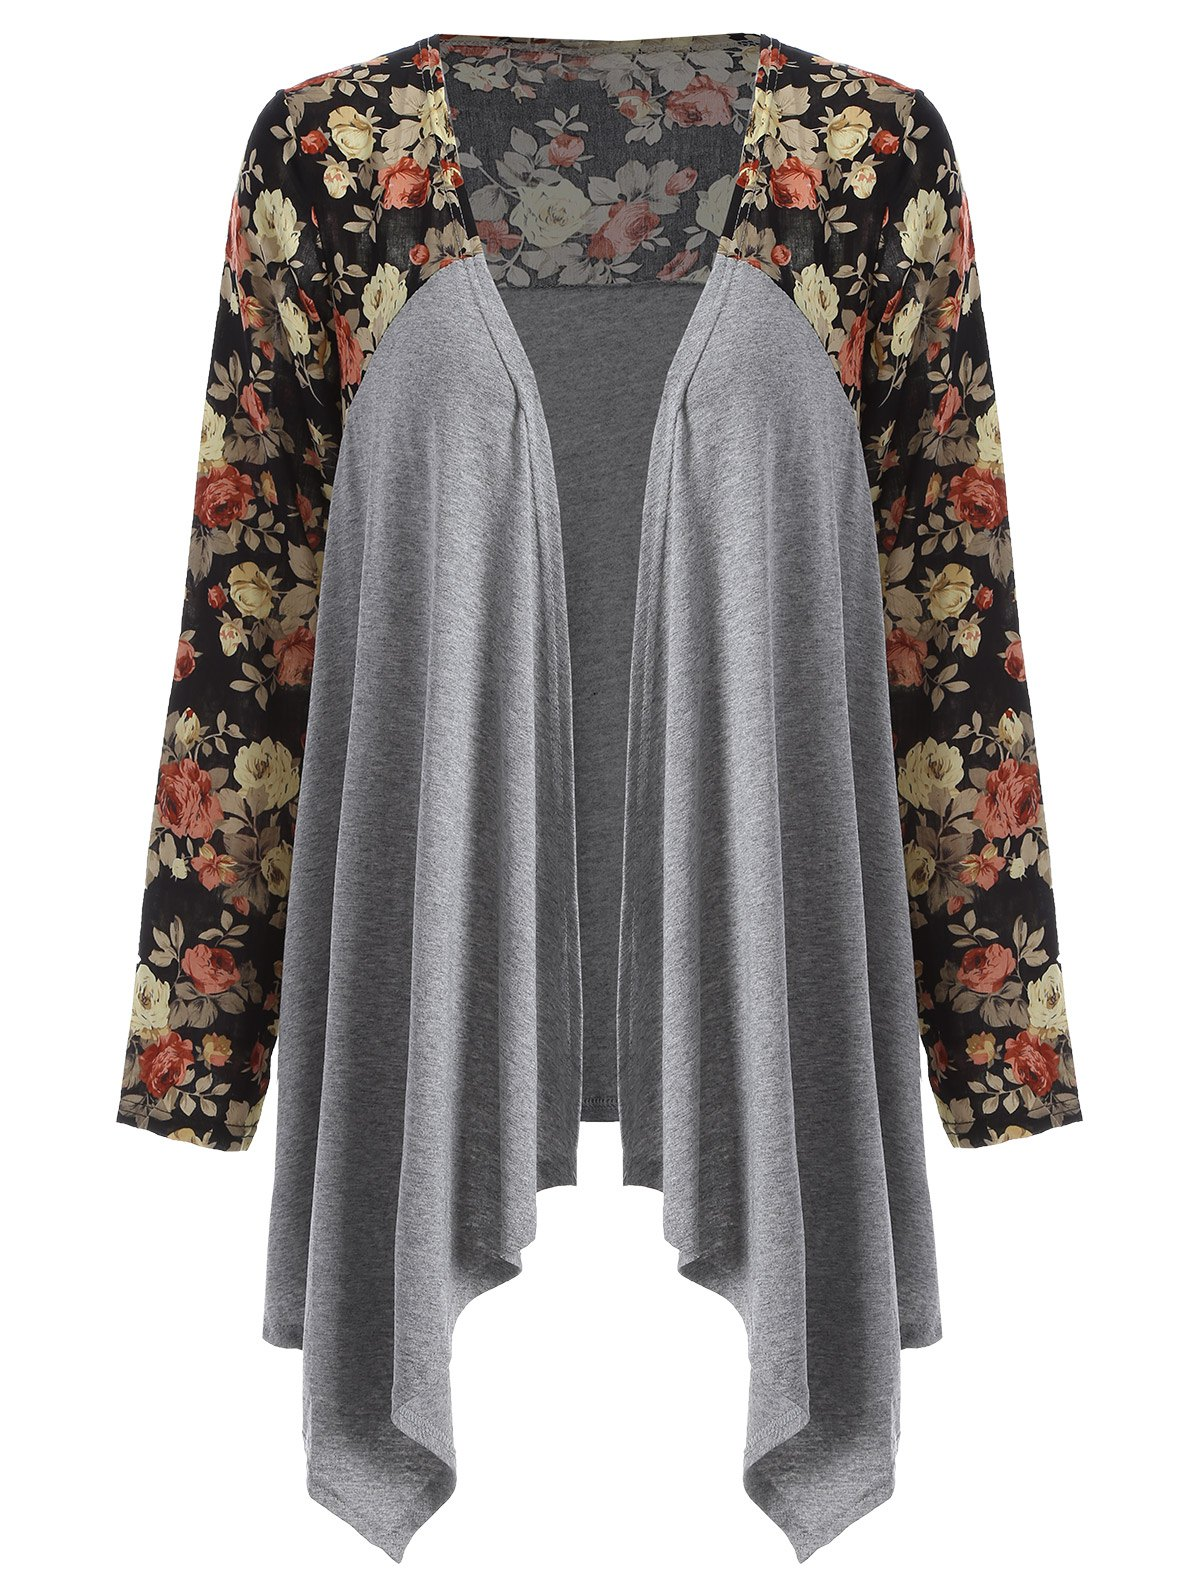 9f0e8b6f5 2018 Floral Open Front Duster Coat In Gray M